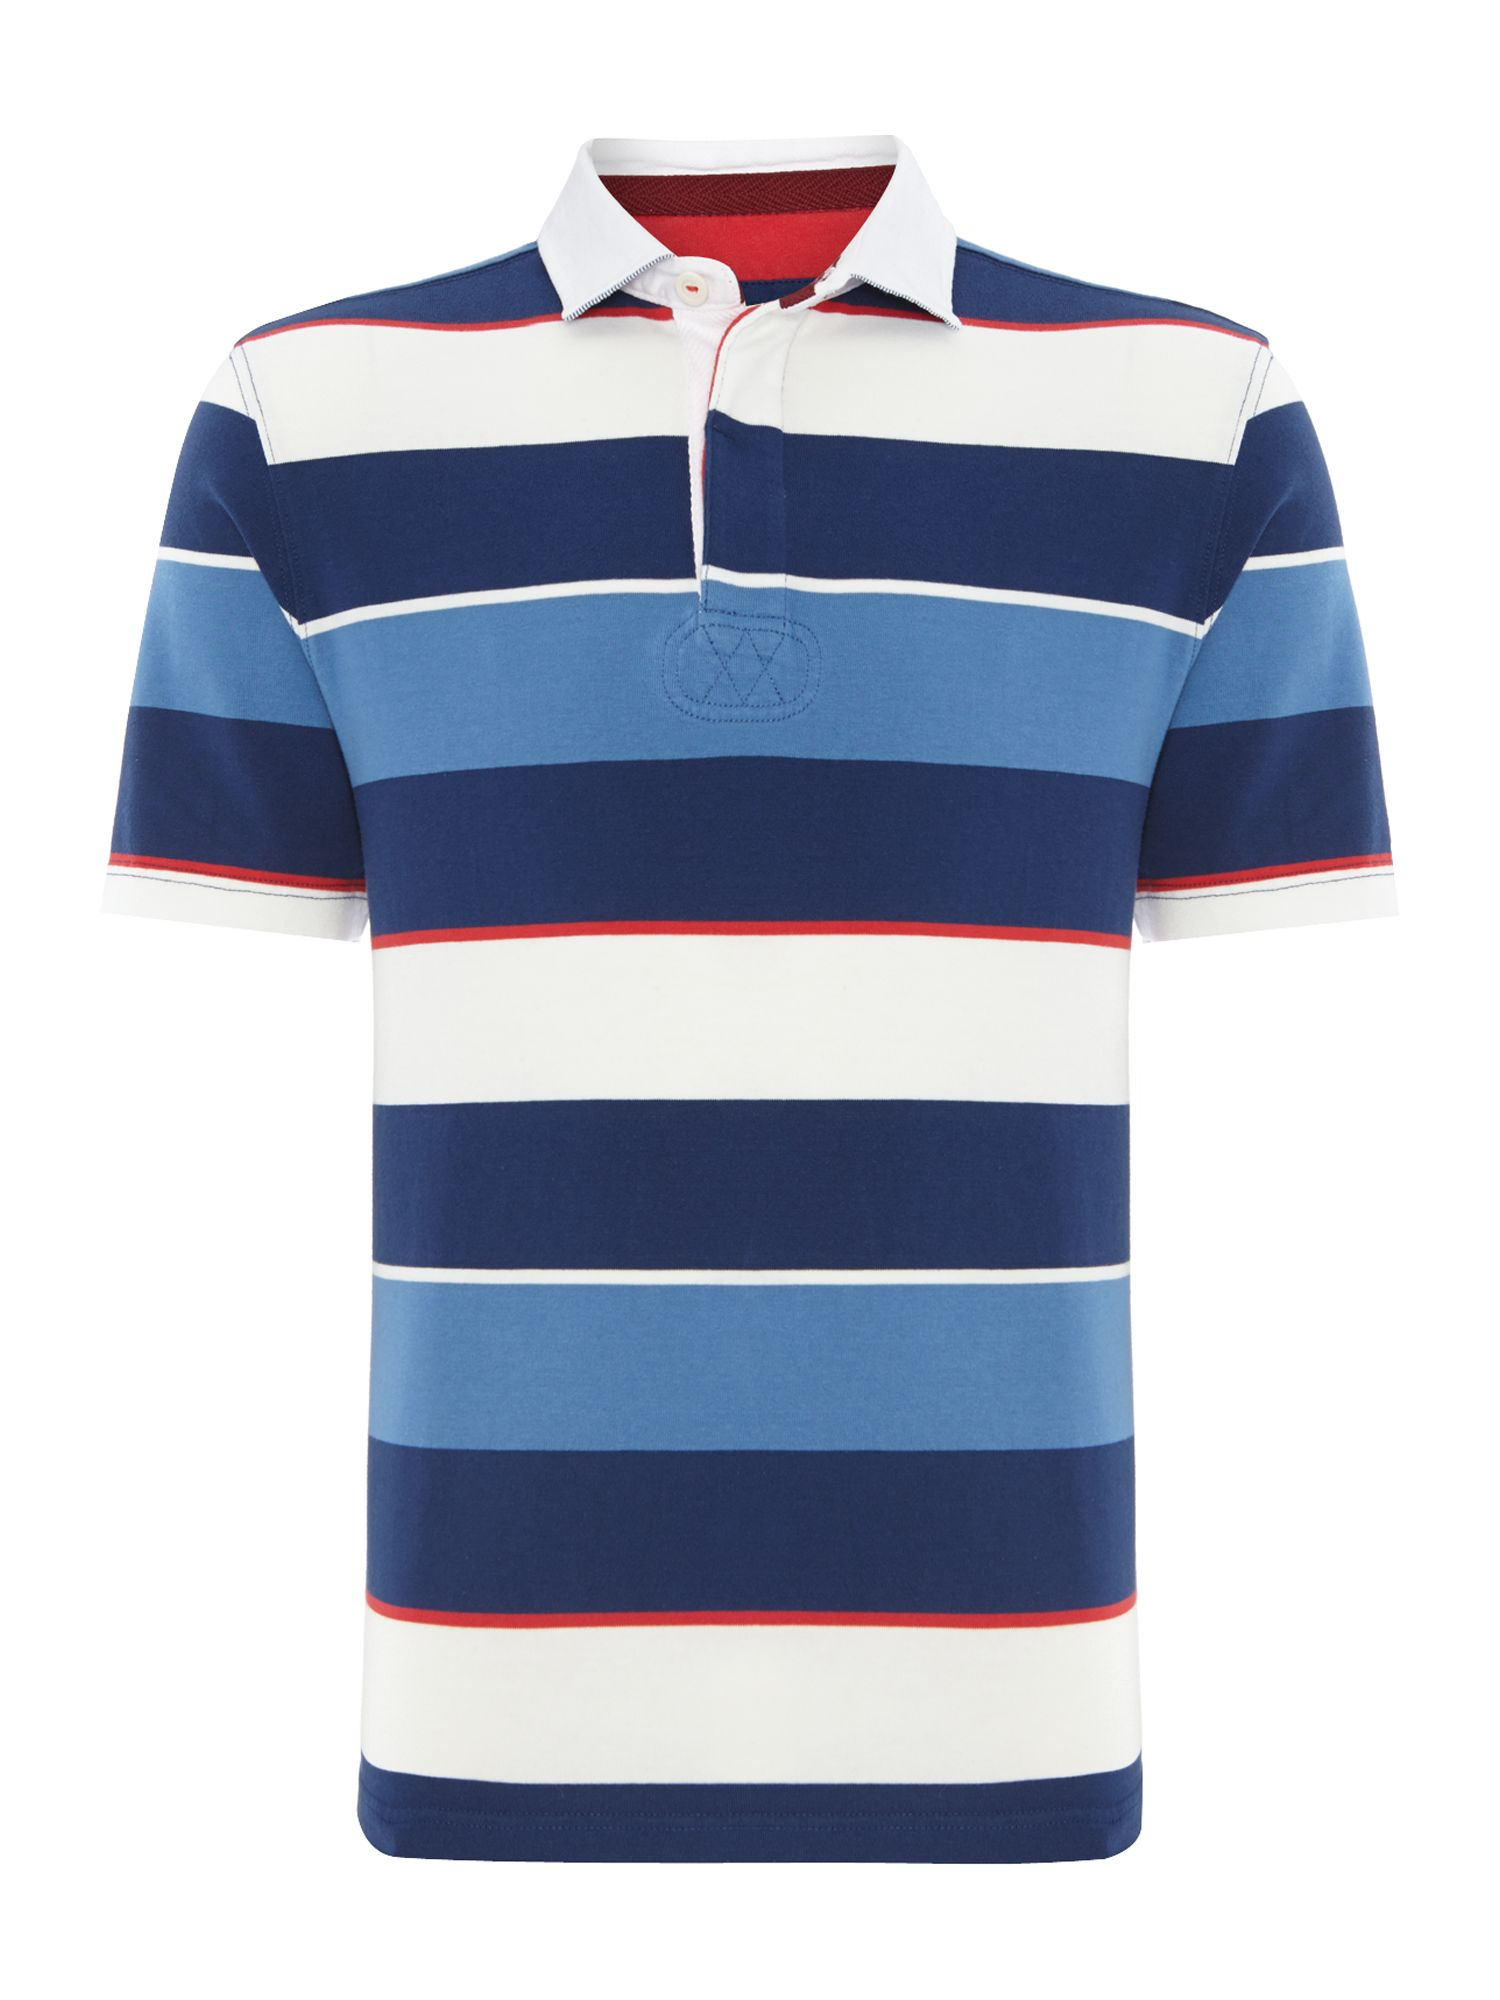 Southwold stripe short sleeve rugby shirt